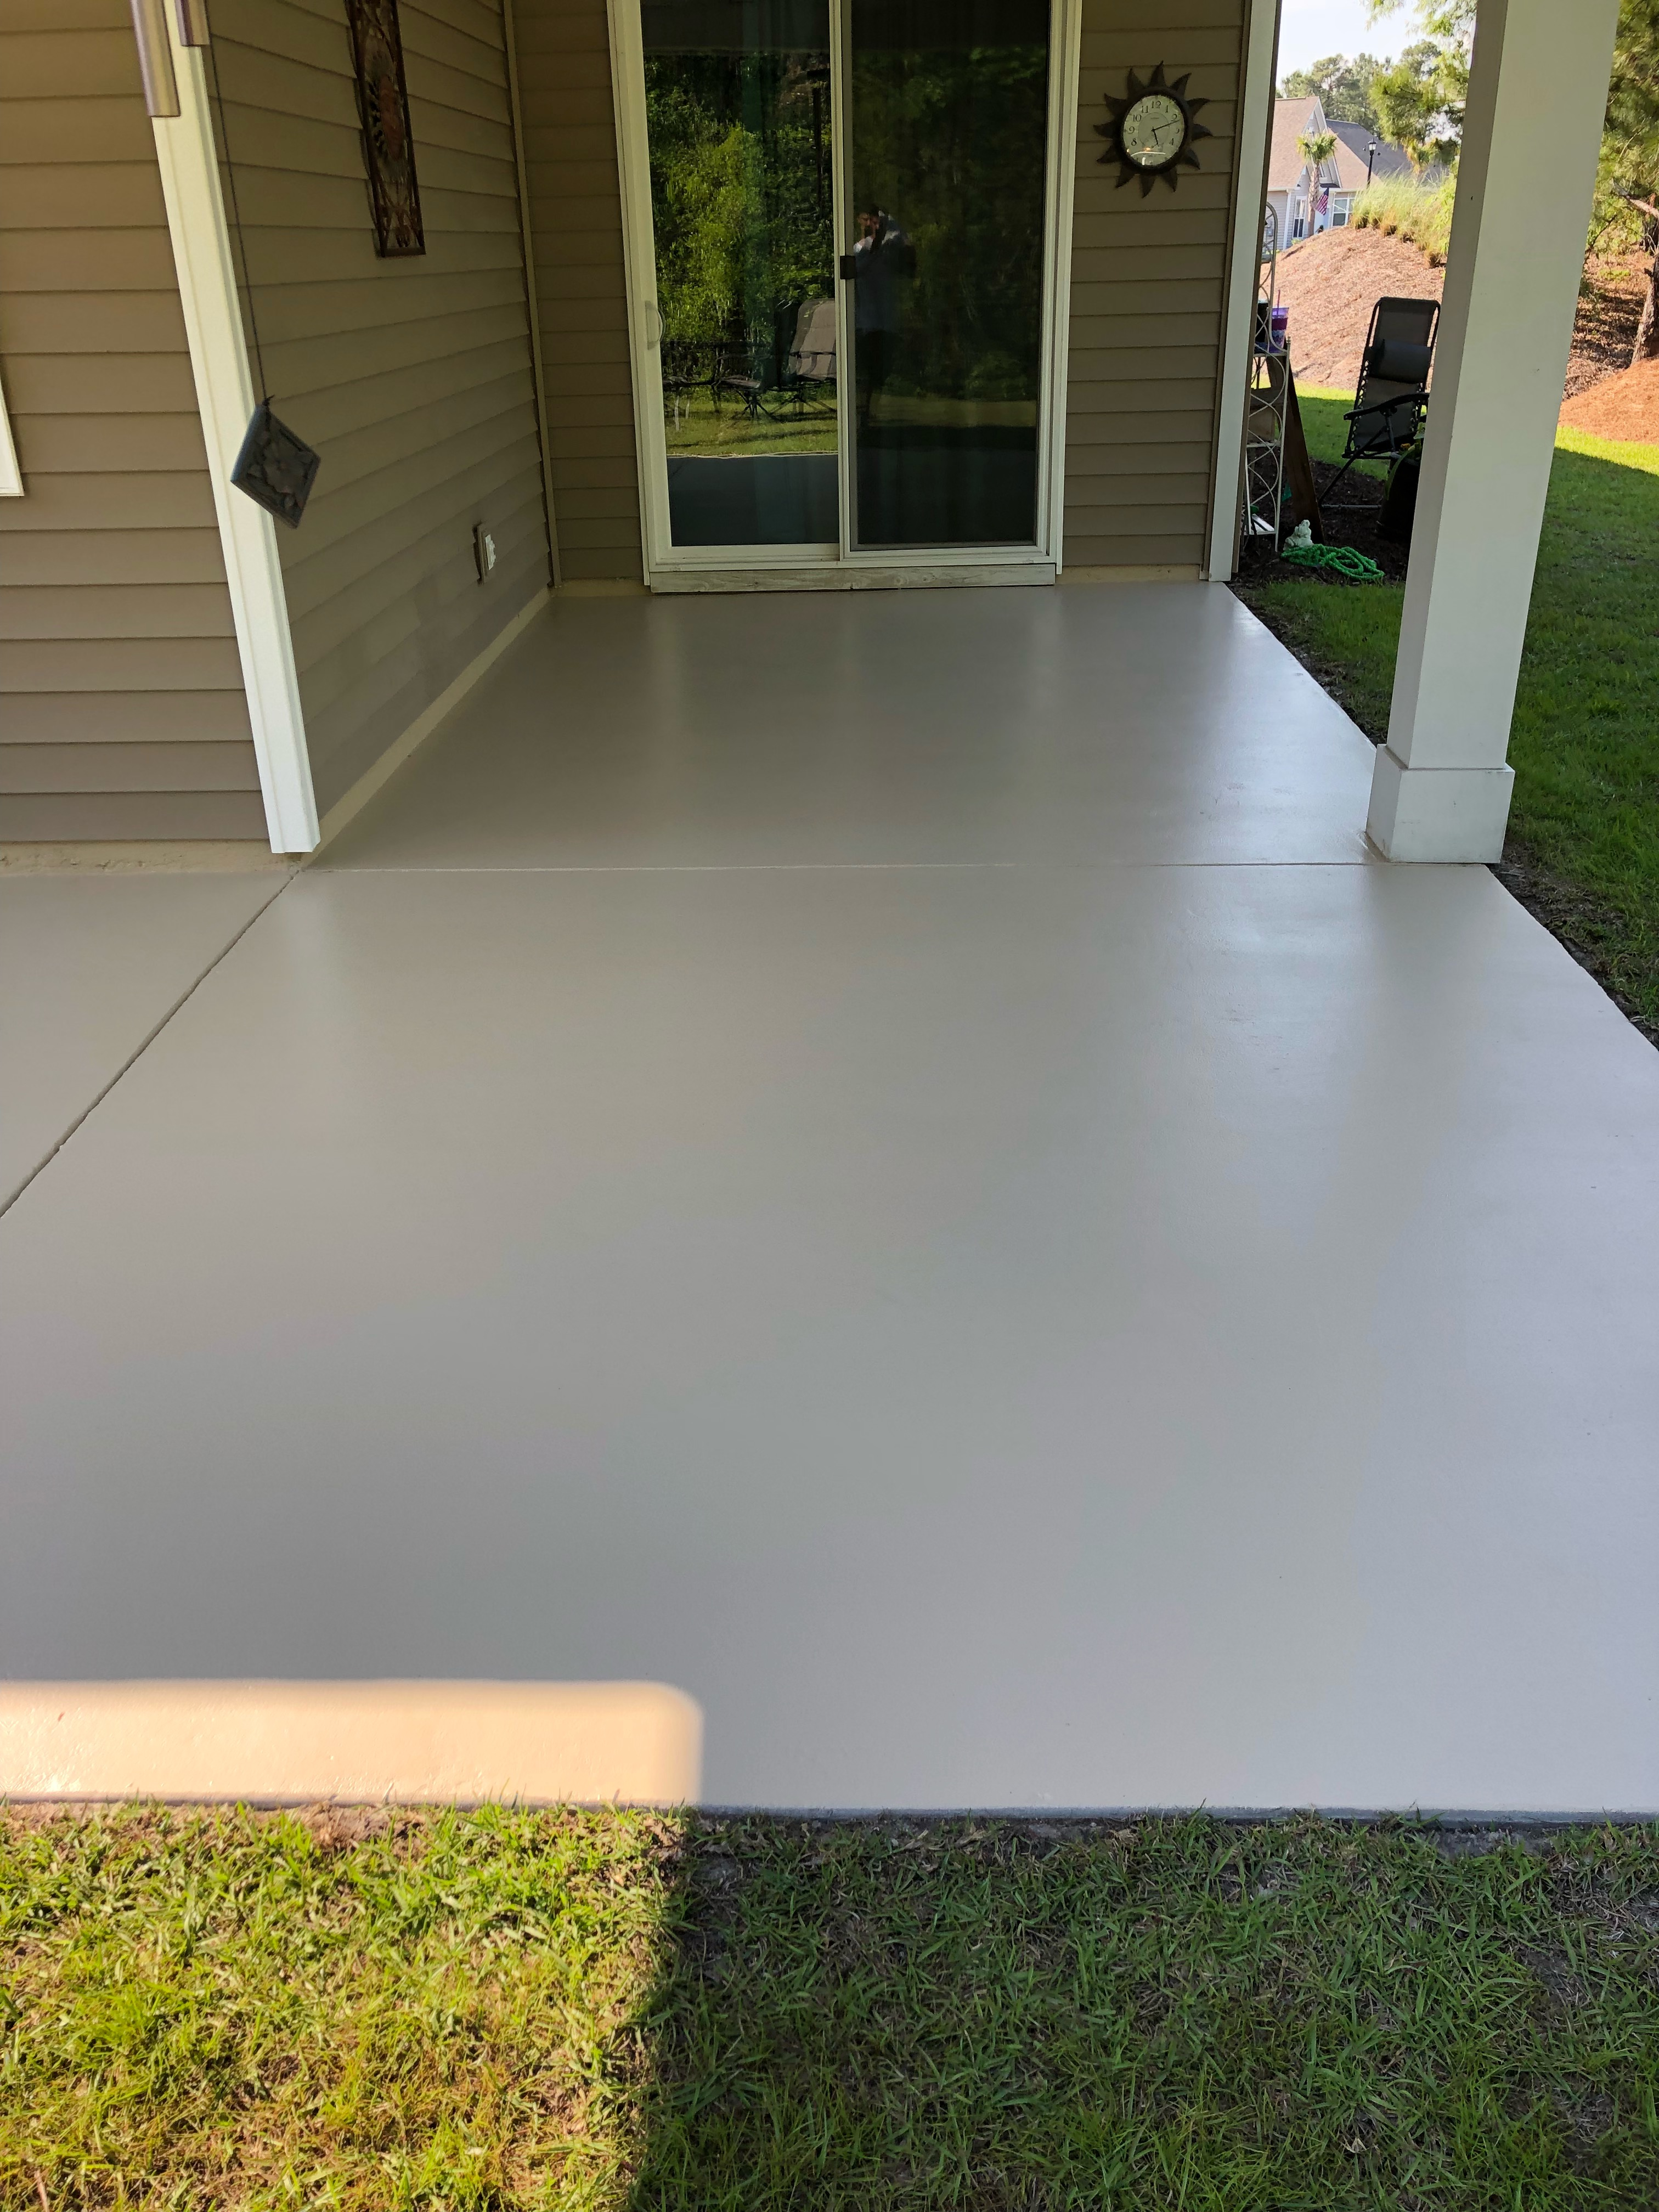 Epoxy Flooring On Porch By OLT Painting